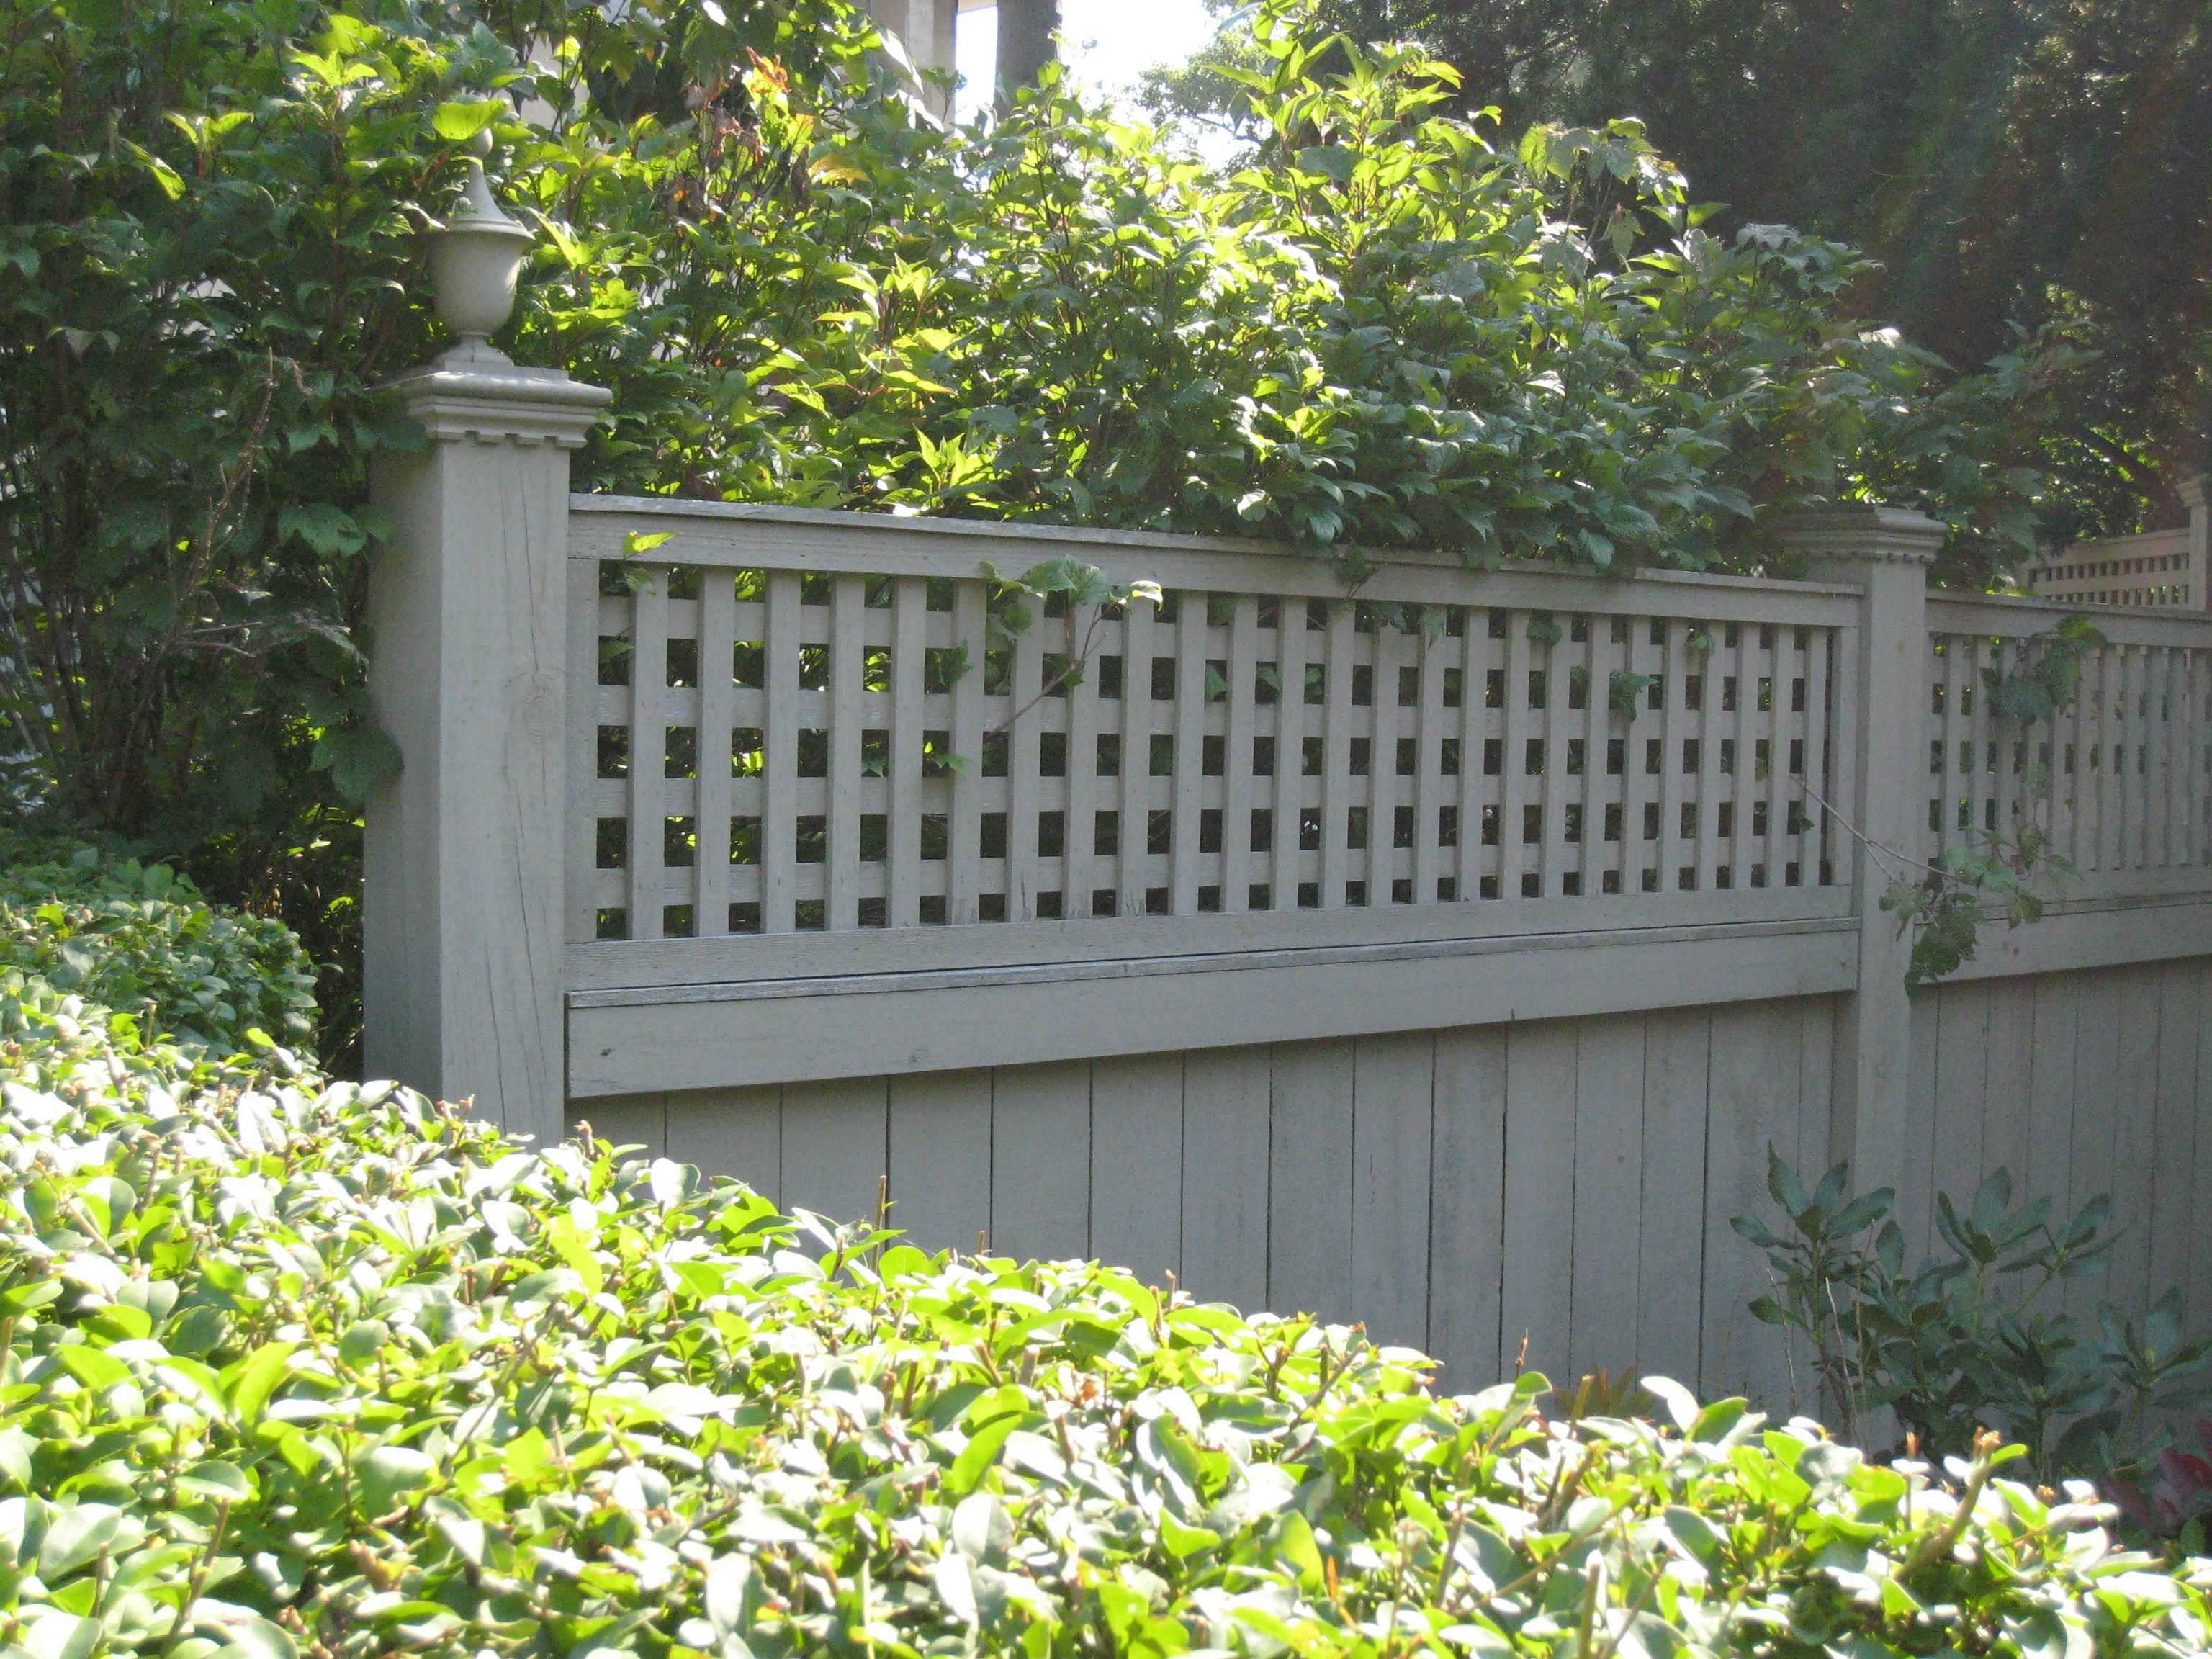 Fencing Decorative Newell Toppers Painted Fence Ideas Garden Fence Paint Fenced Vegetable Garden Front Yard Fence